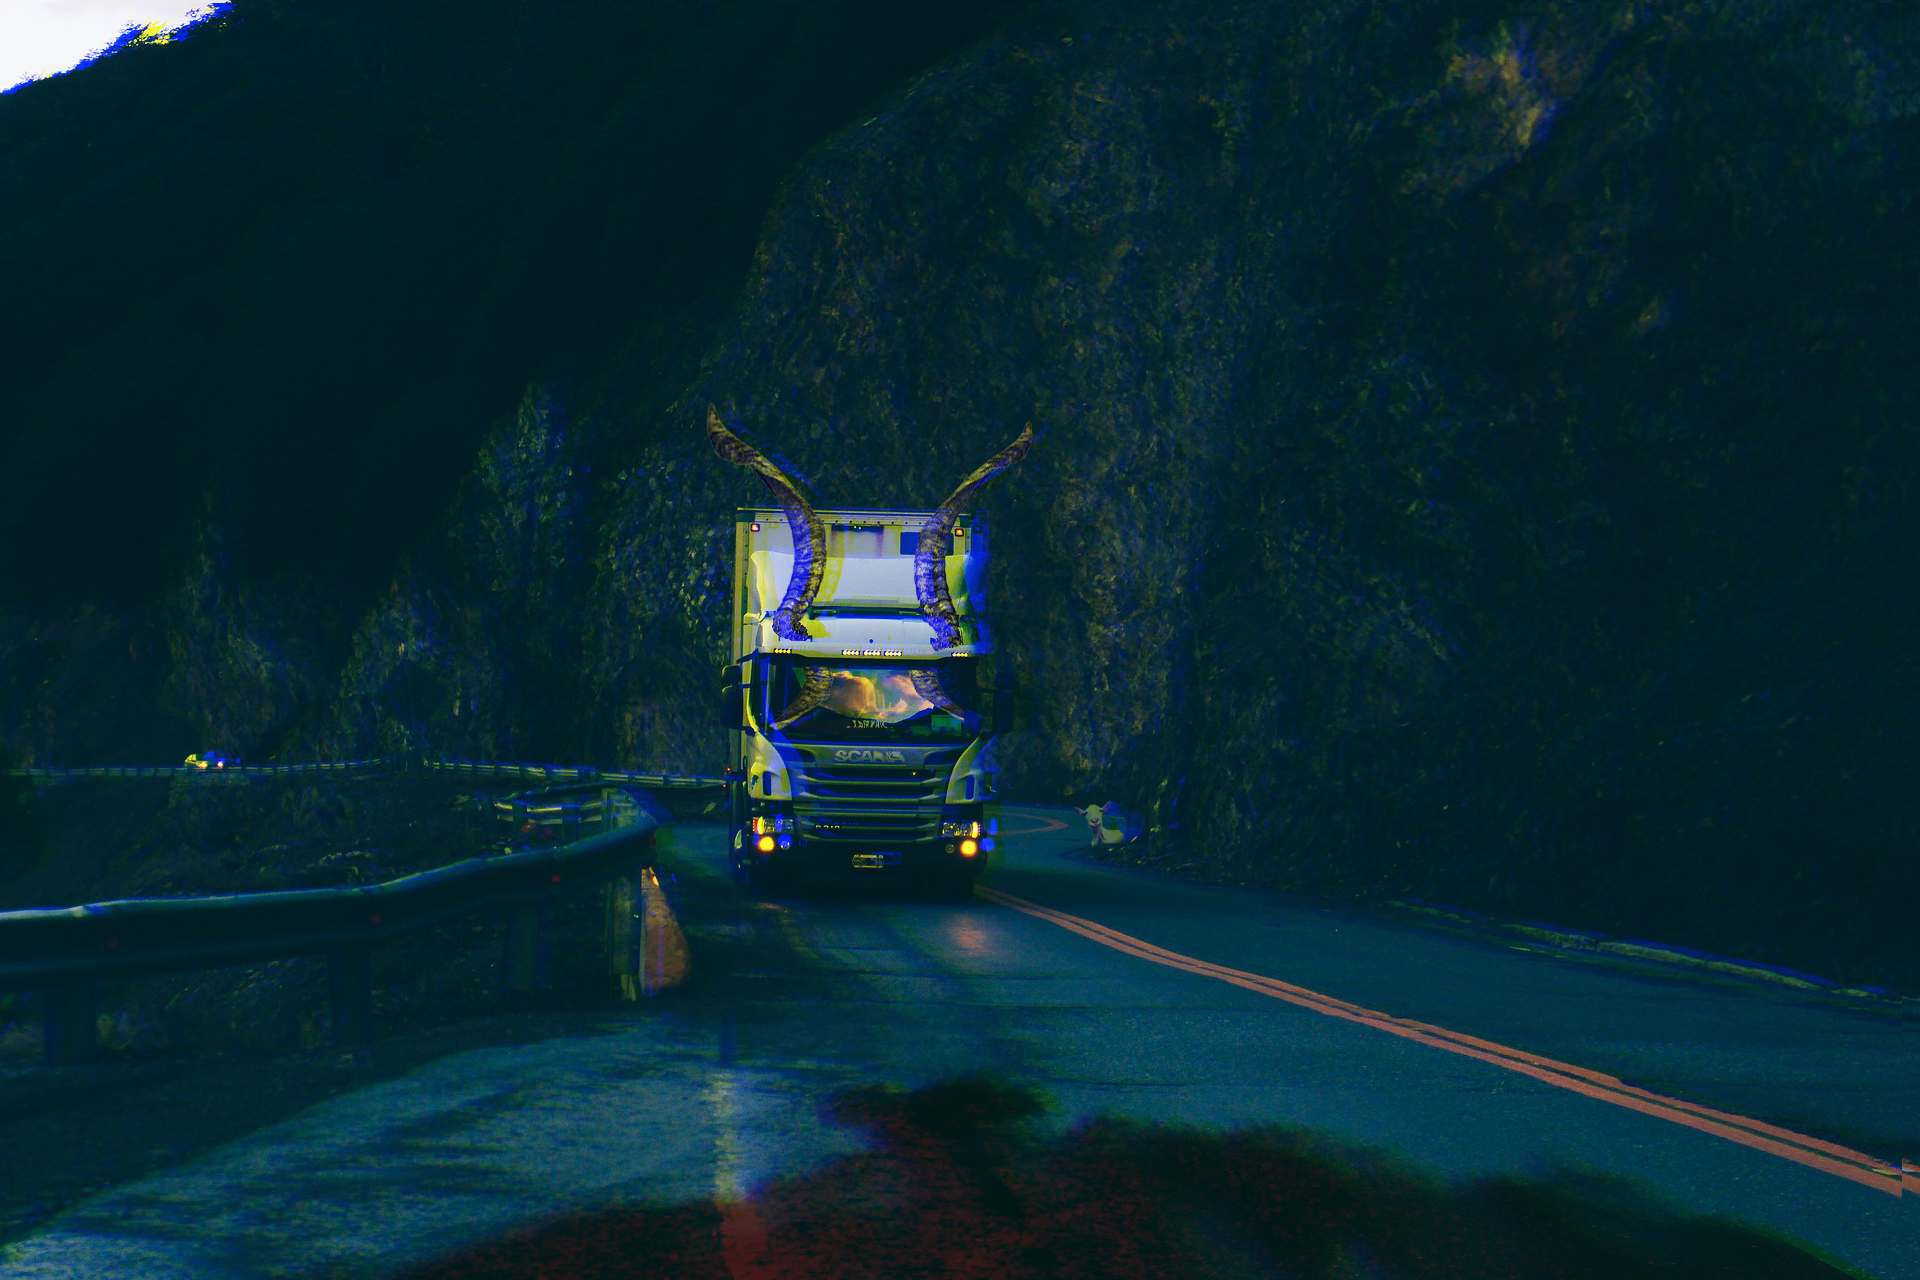 powellTheSatyrTruck.png